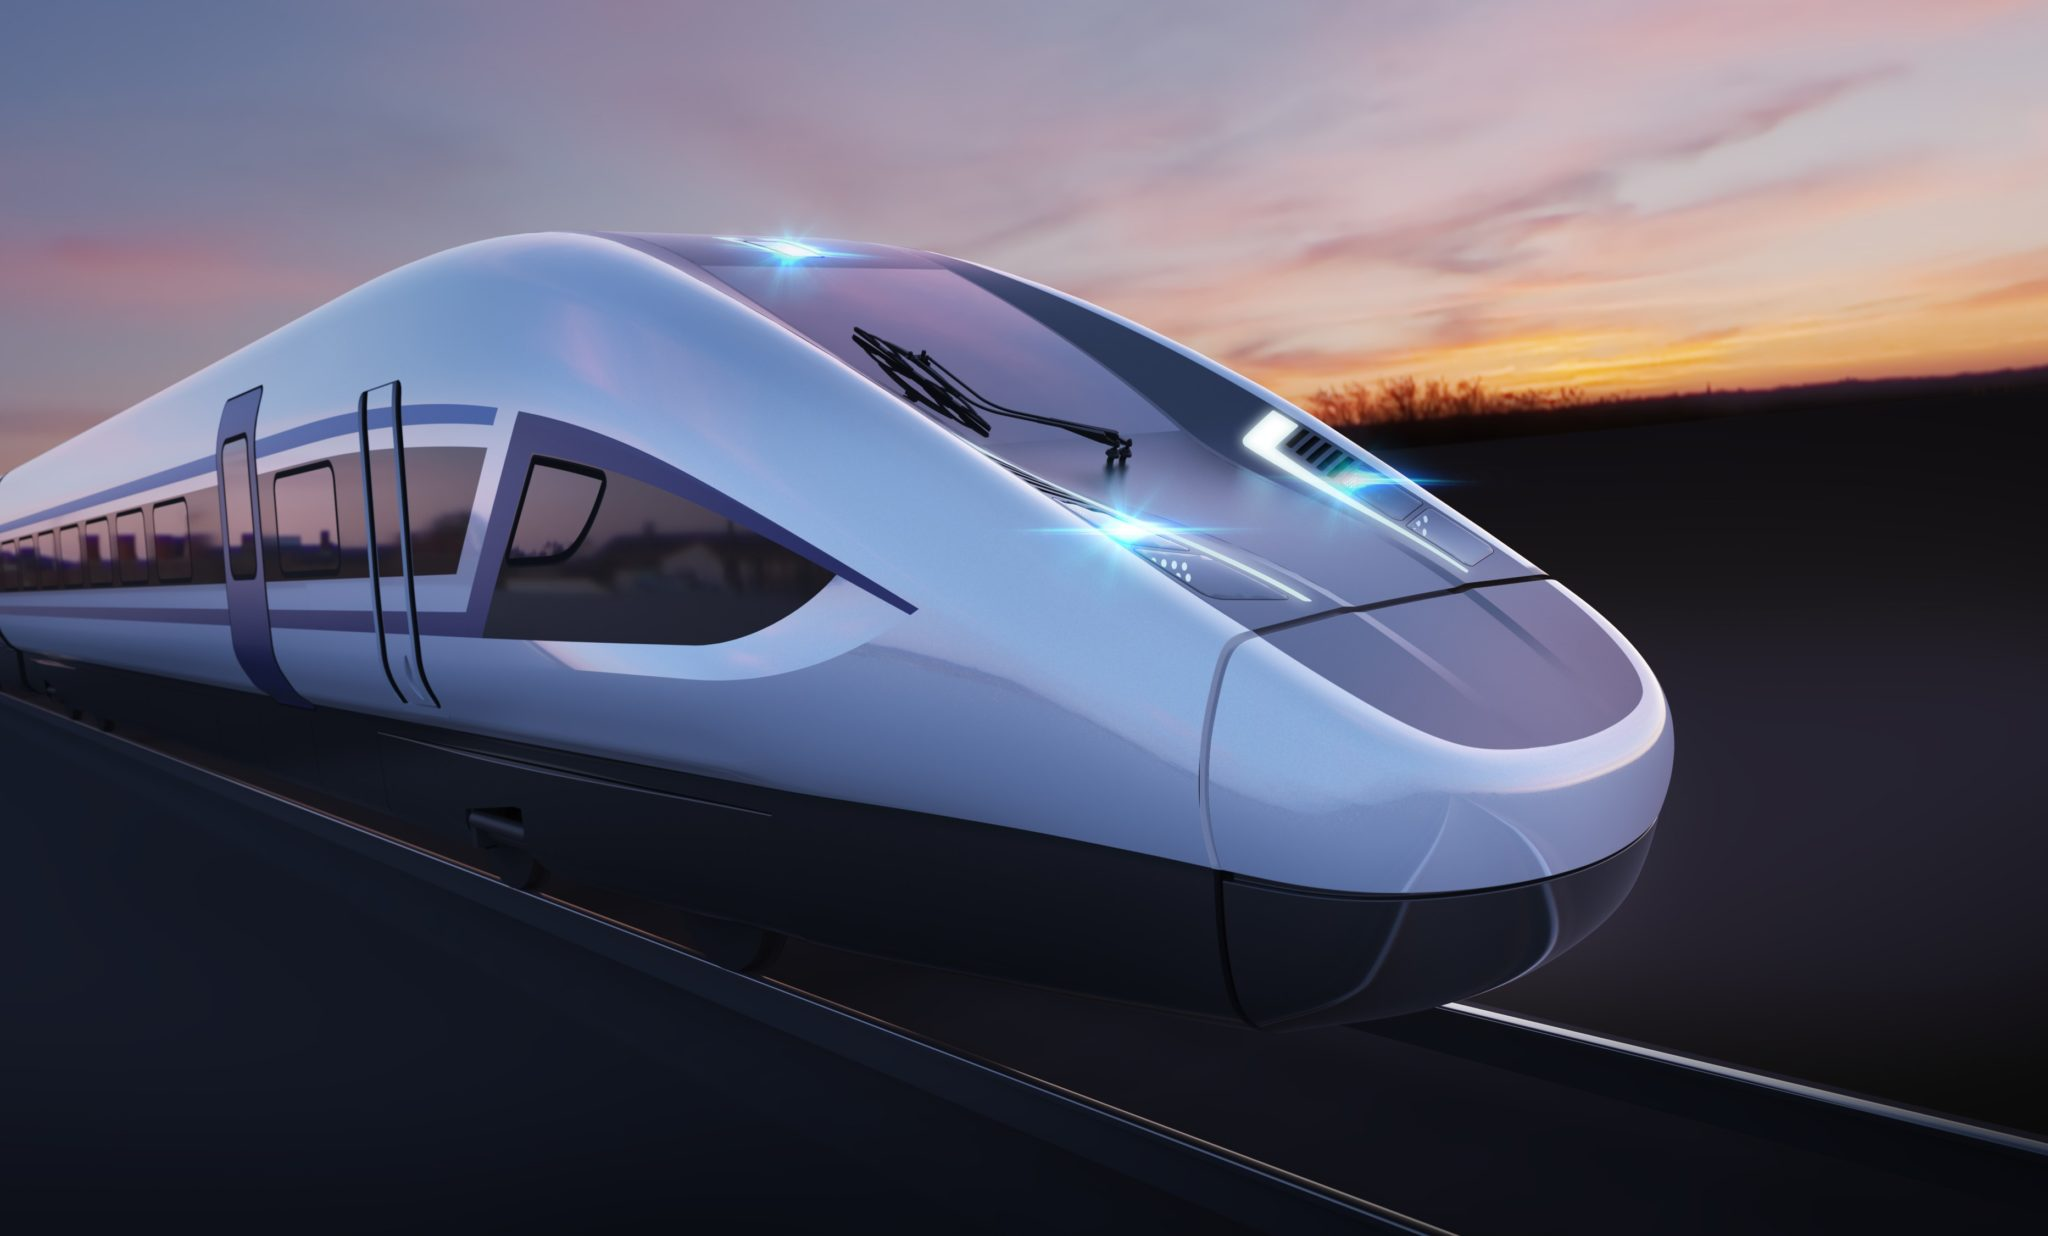 HS2 train design as submitted by Siemens Mobility Ltd